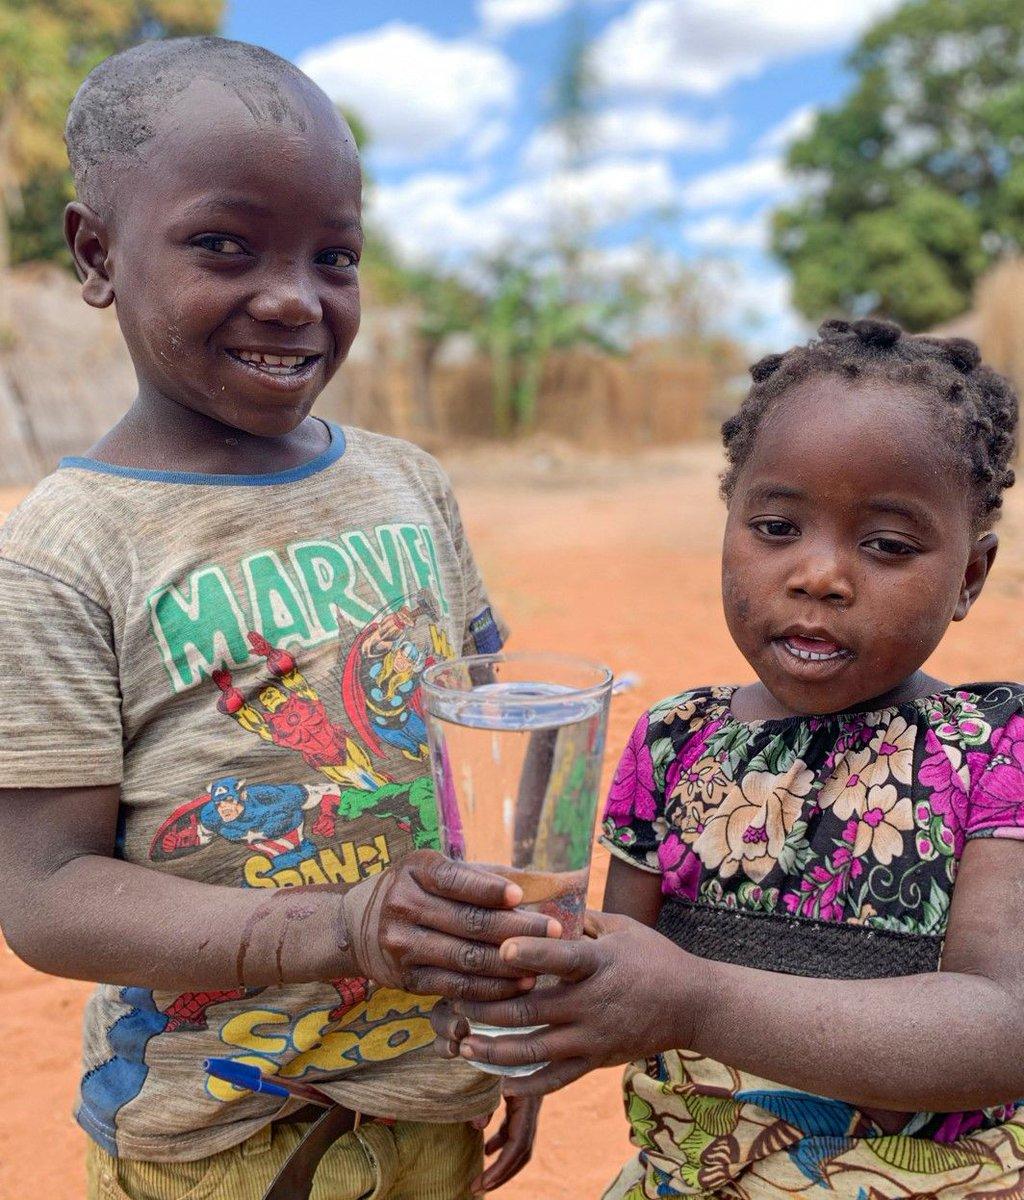 Children often share the burden of water collection with their mothers which takes away time that could be spent in school ☀️ 📚 Millions of families do not have clean water or a functional toilet at home🚿 🚽 #cleanwaterforall #bepartofthesolution #takeaction 🌟